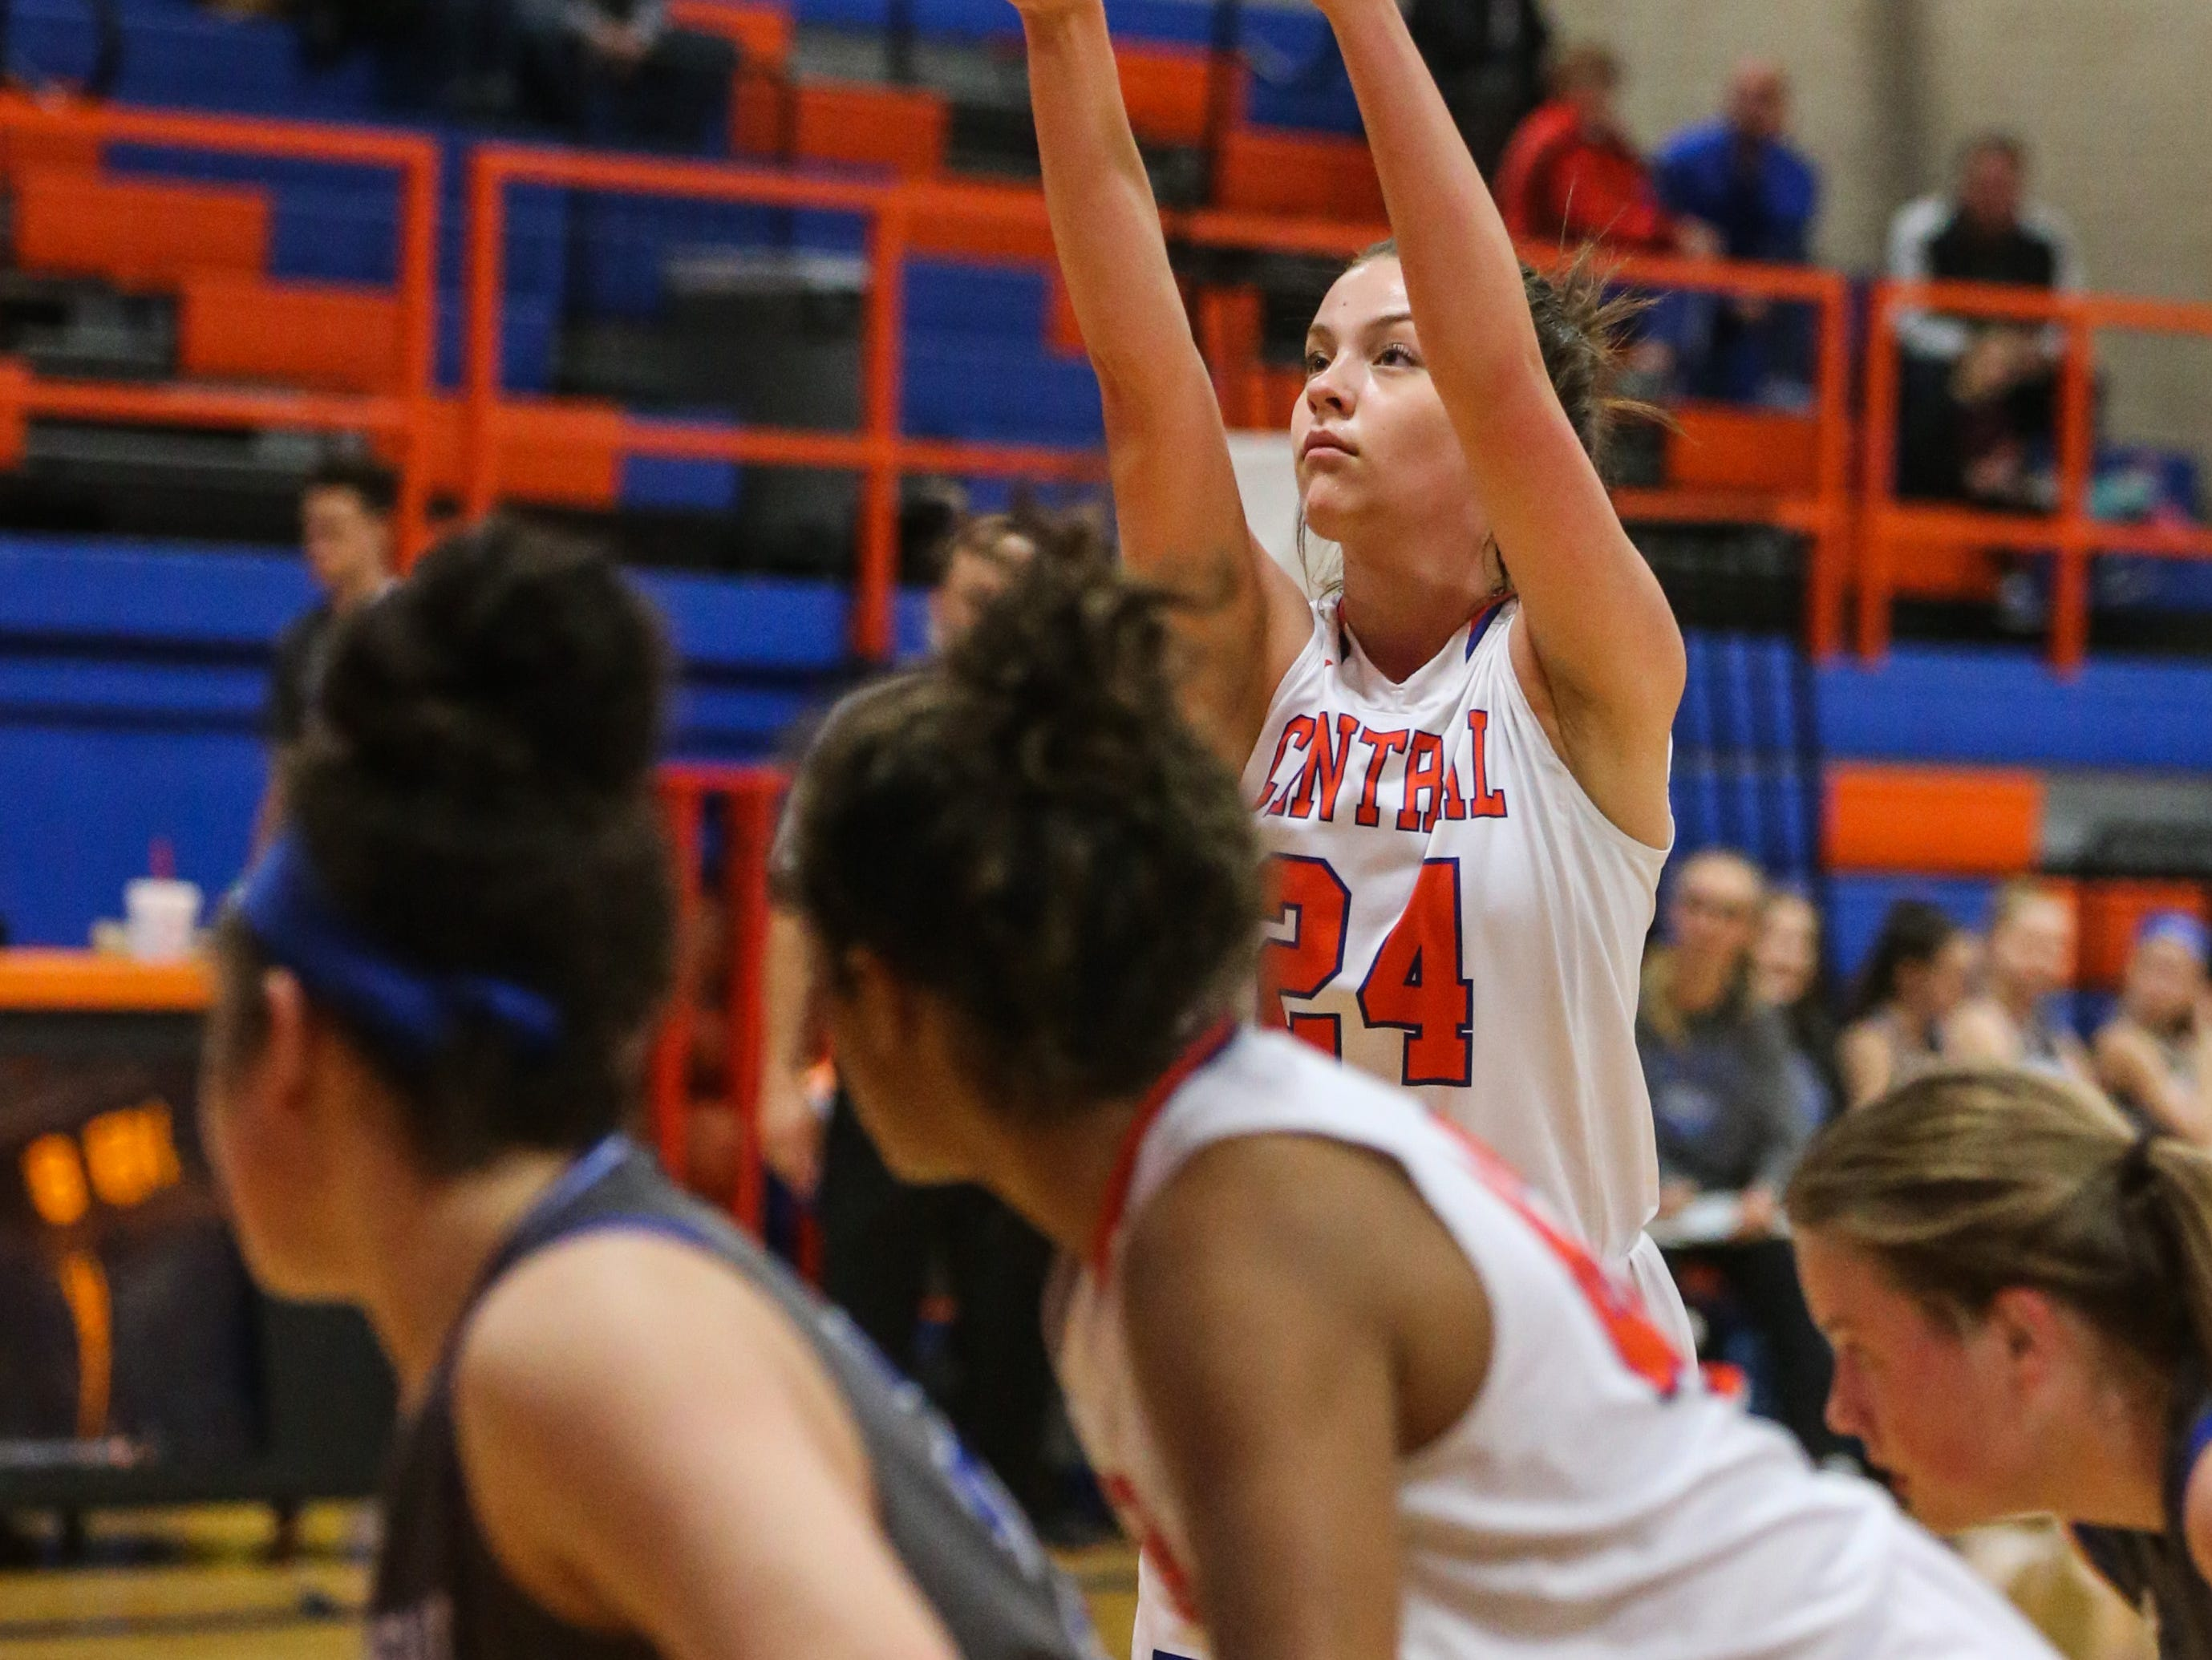 Central's Madison Foley shoots a free throw against Weatherford on Tuesday, Jan. 22, 2019, at Central High School.